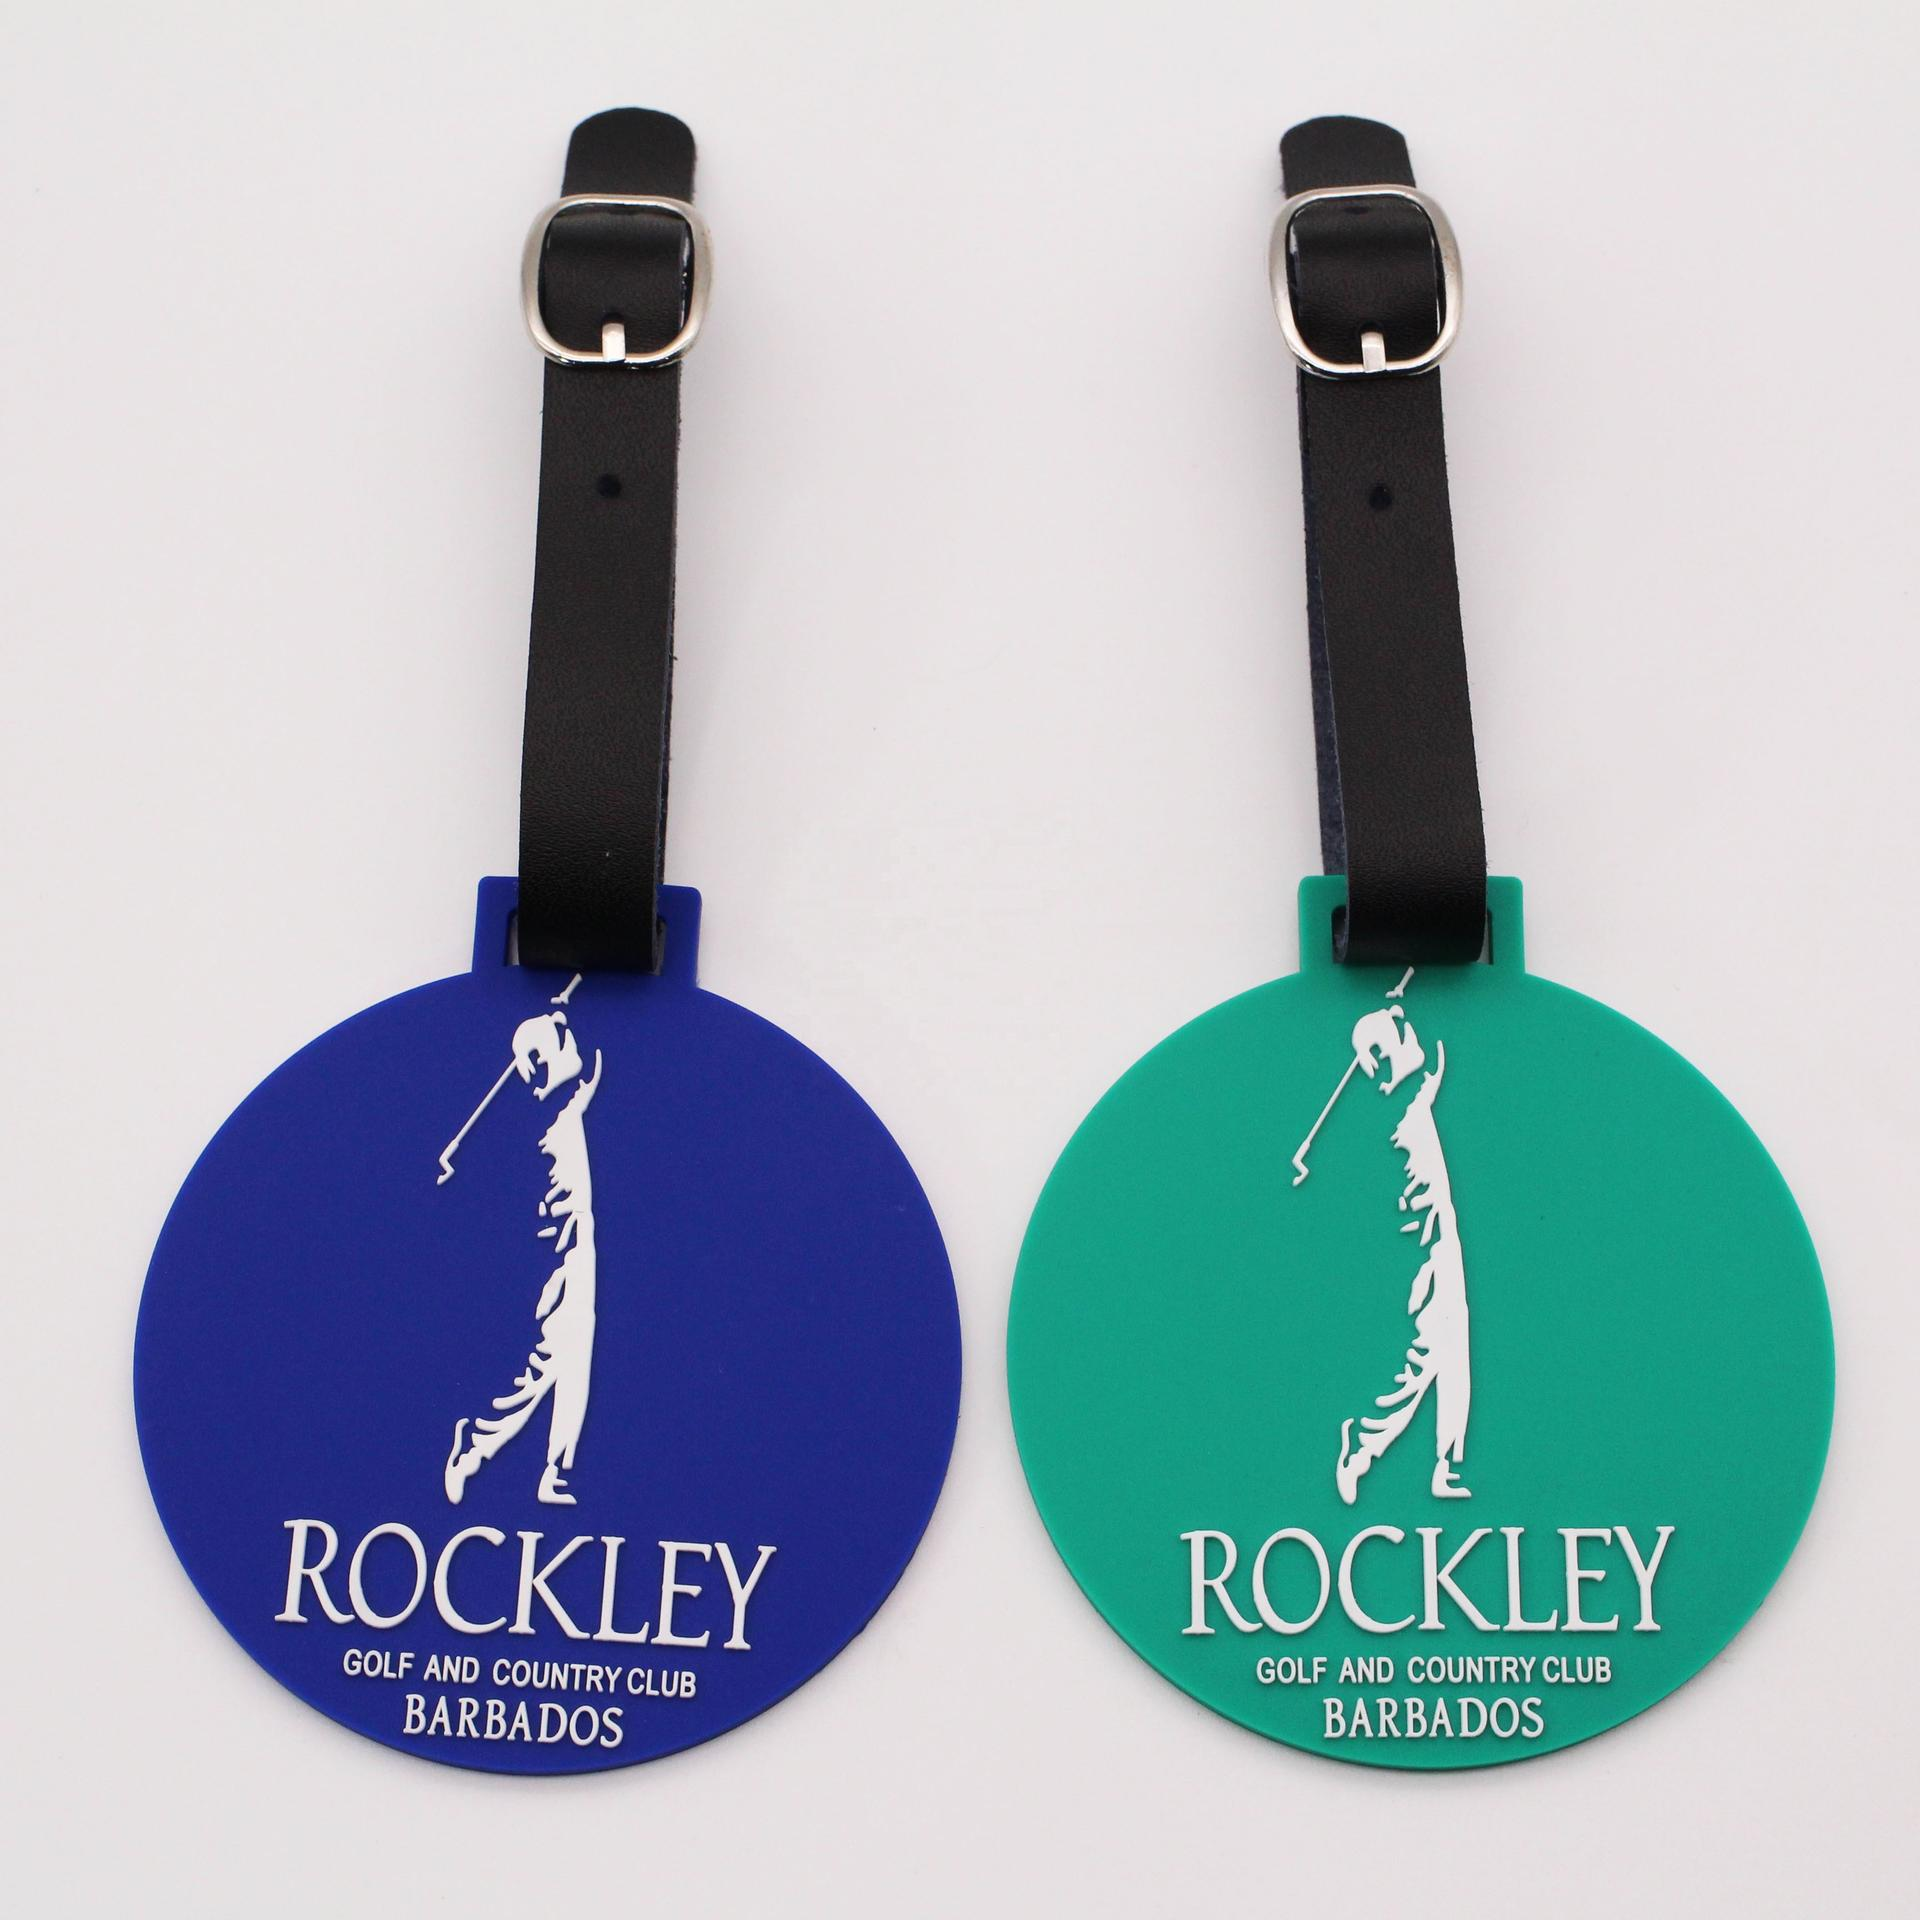 Round shape customized soft pvc golf bag luggage name tag